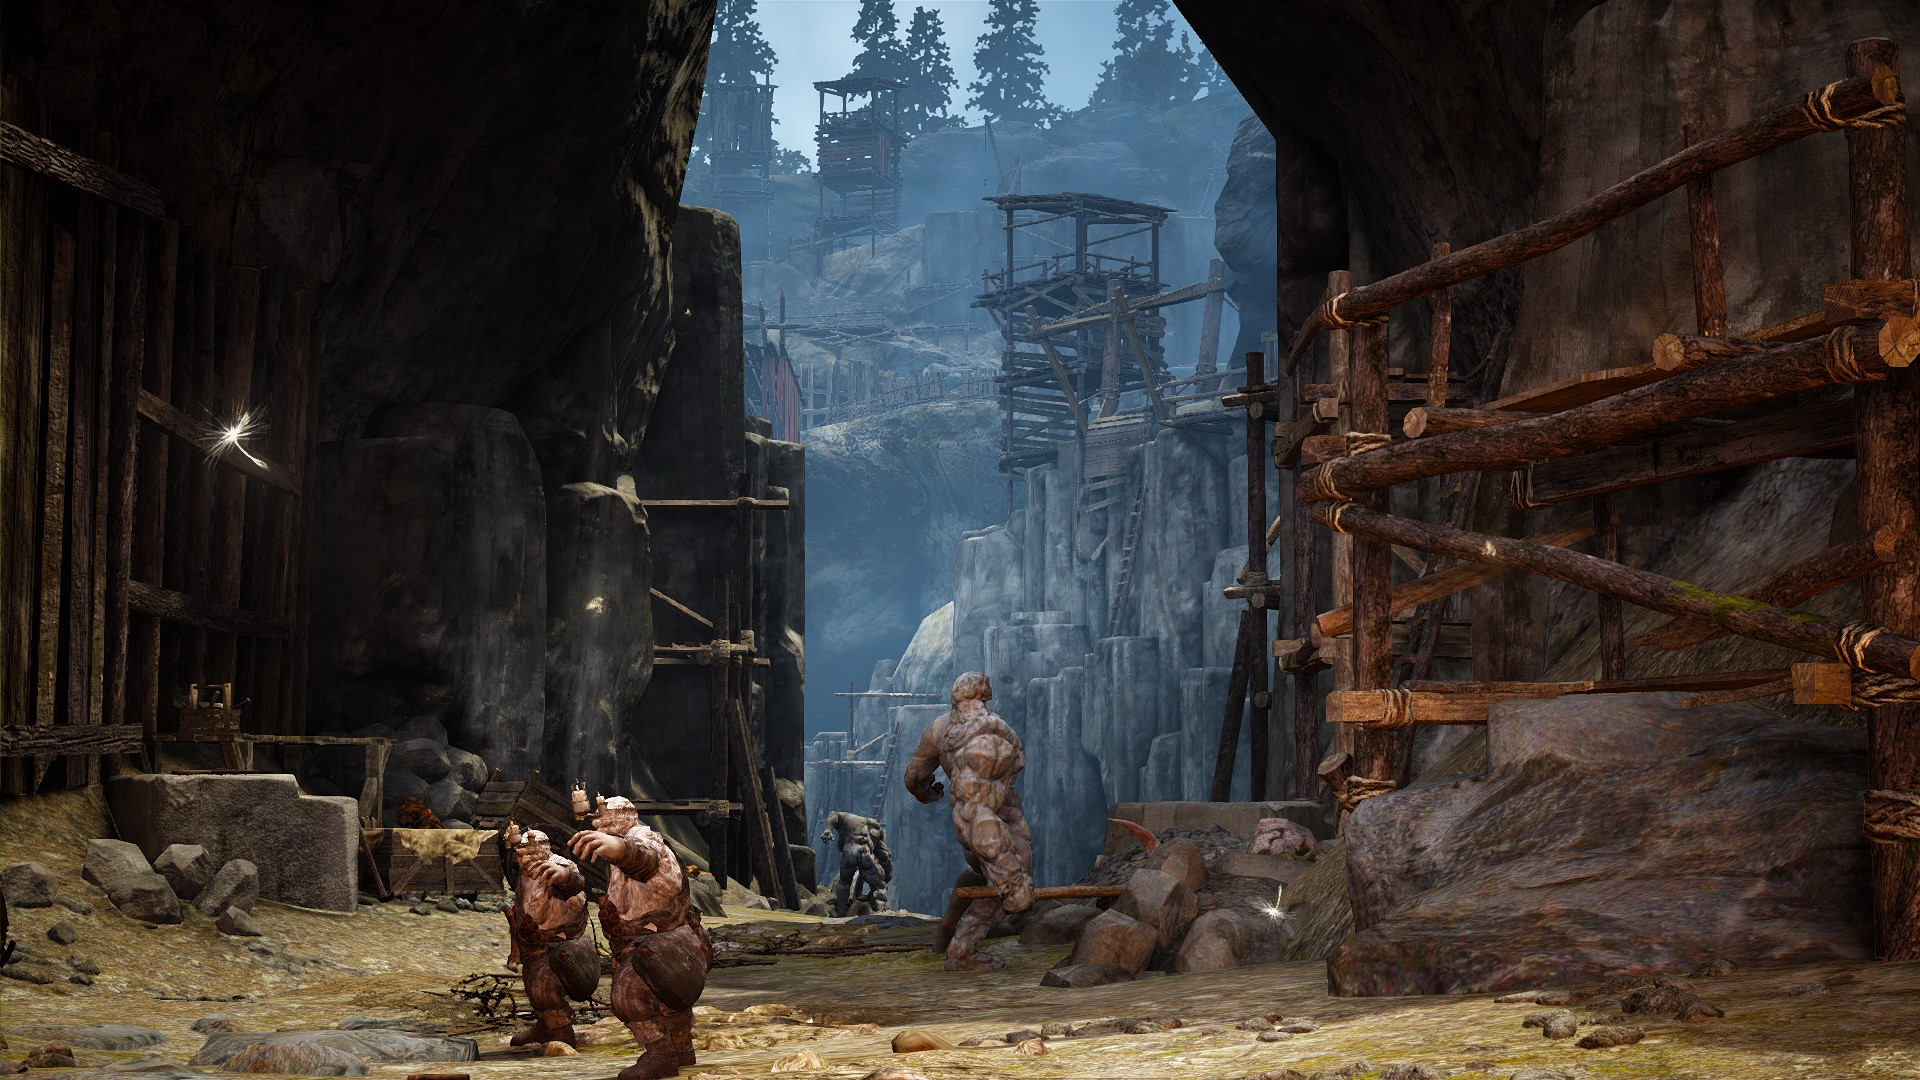 Petrified Dwarves turn to stone when you kill them. Very cool.